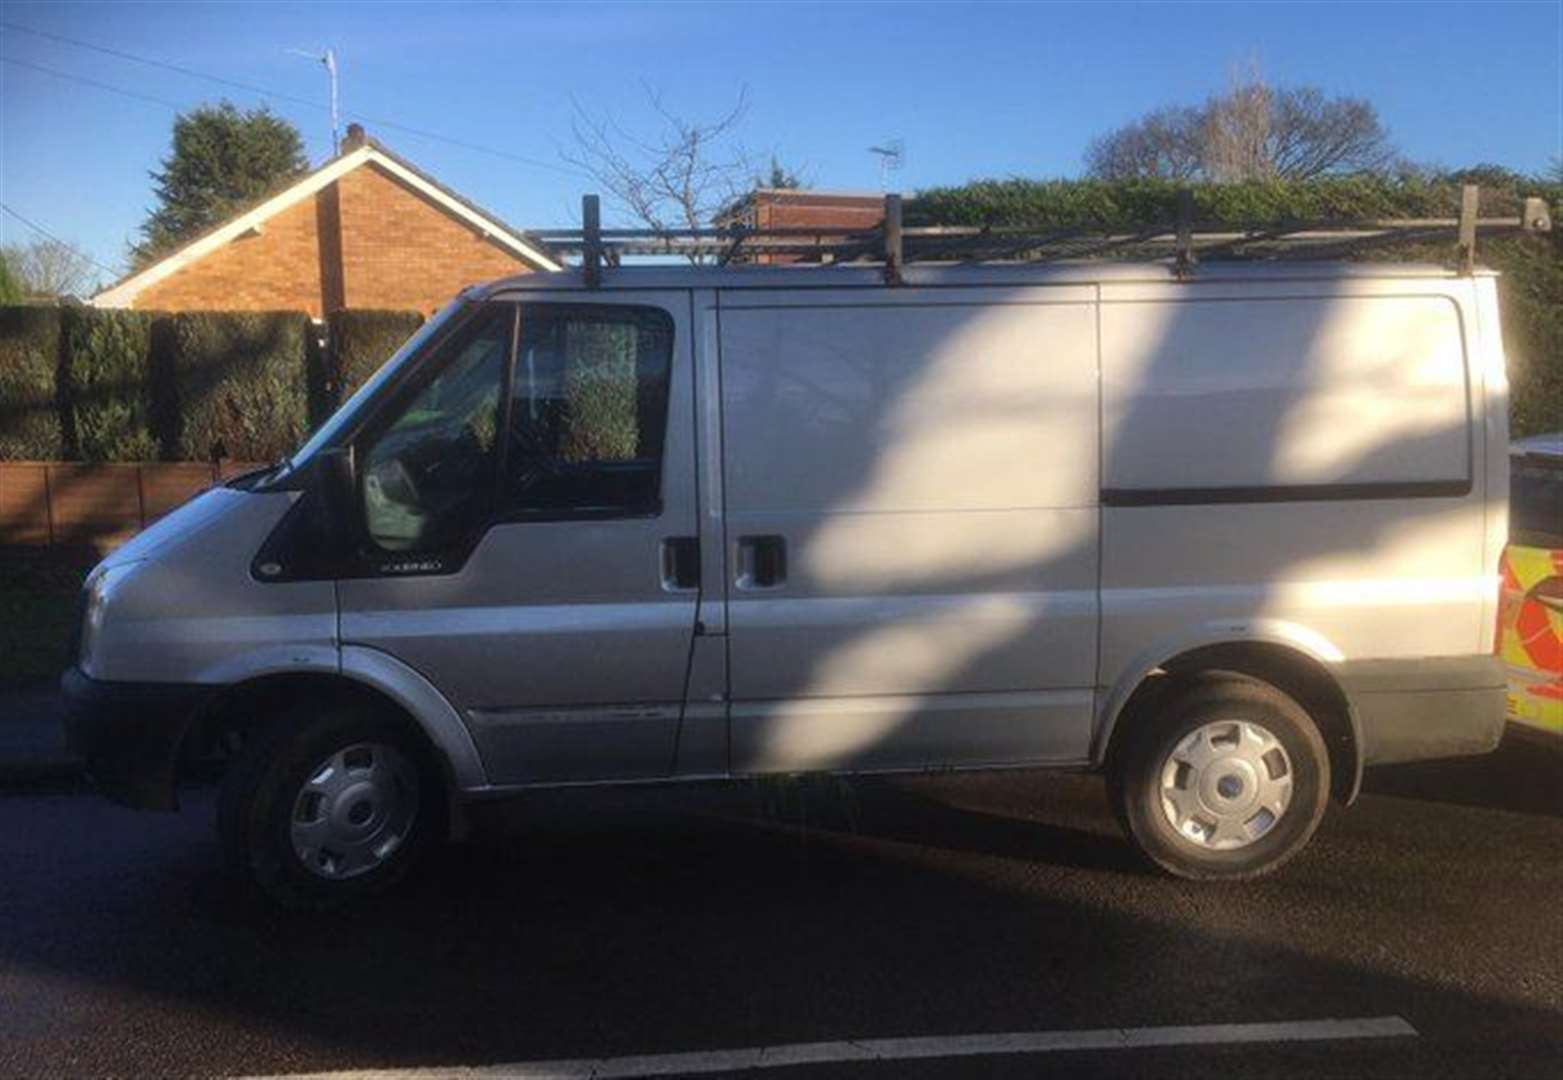 Man arrested and van seized after police search in village